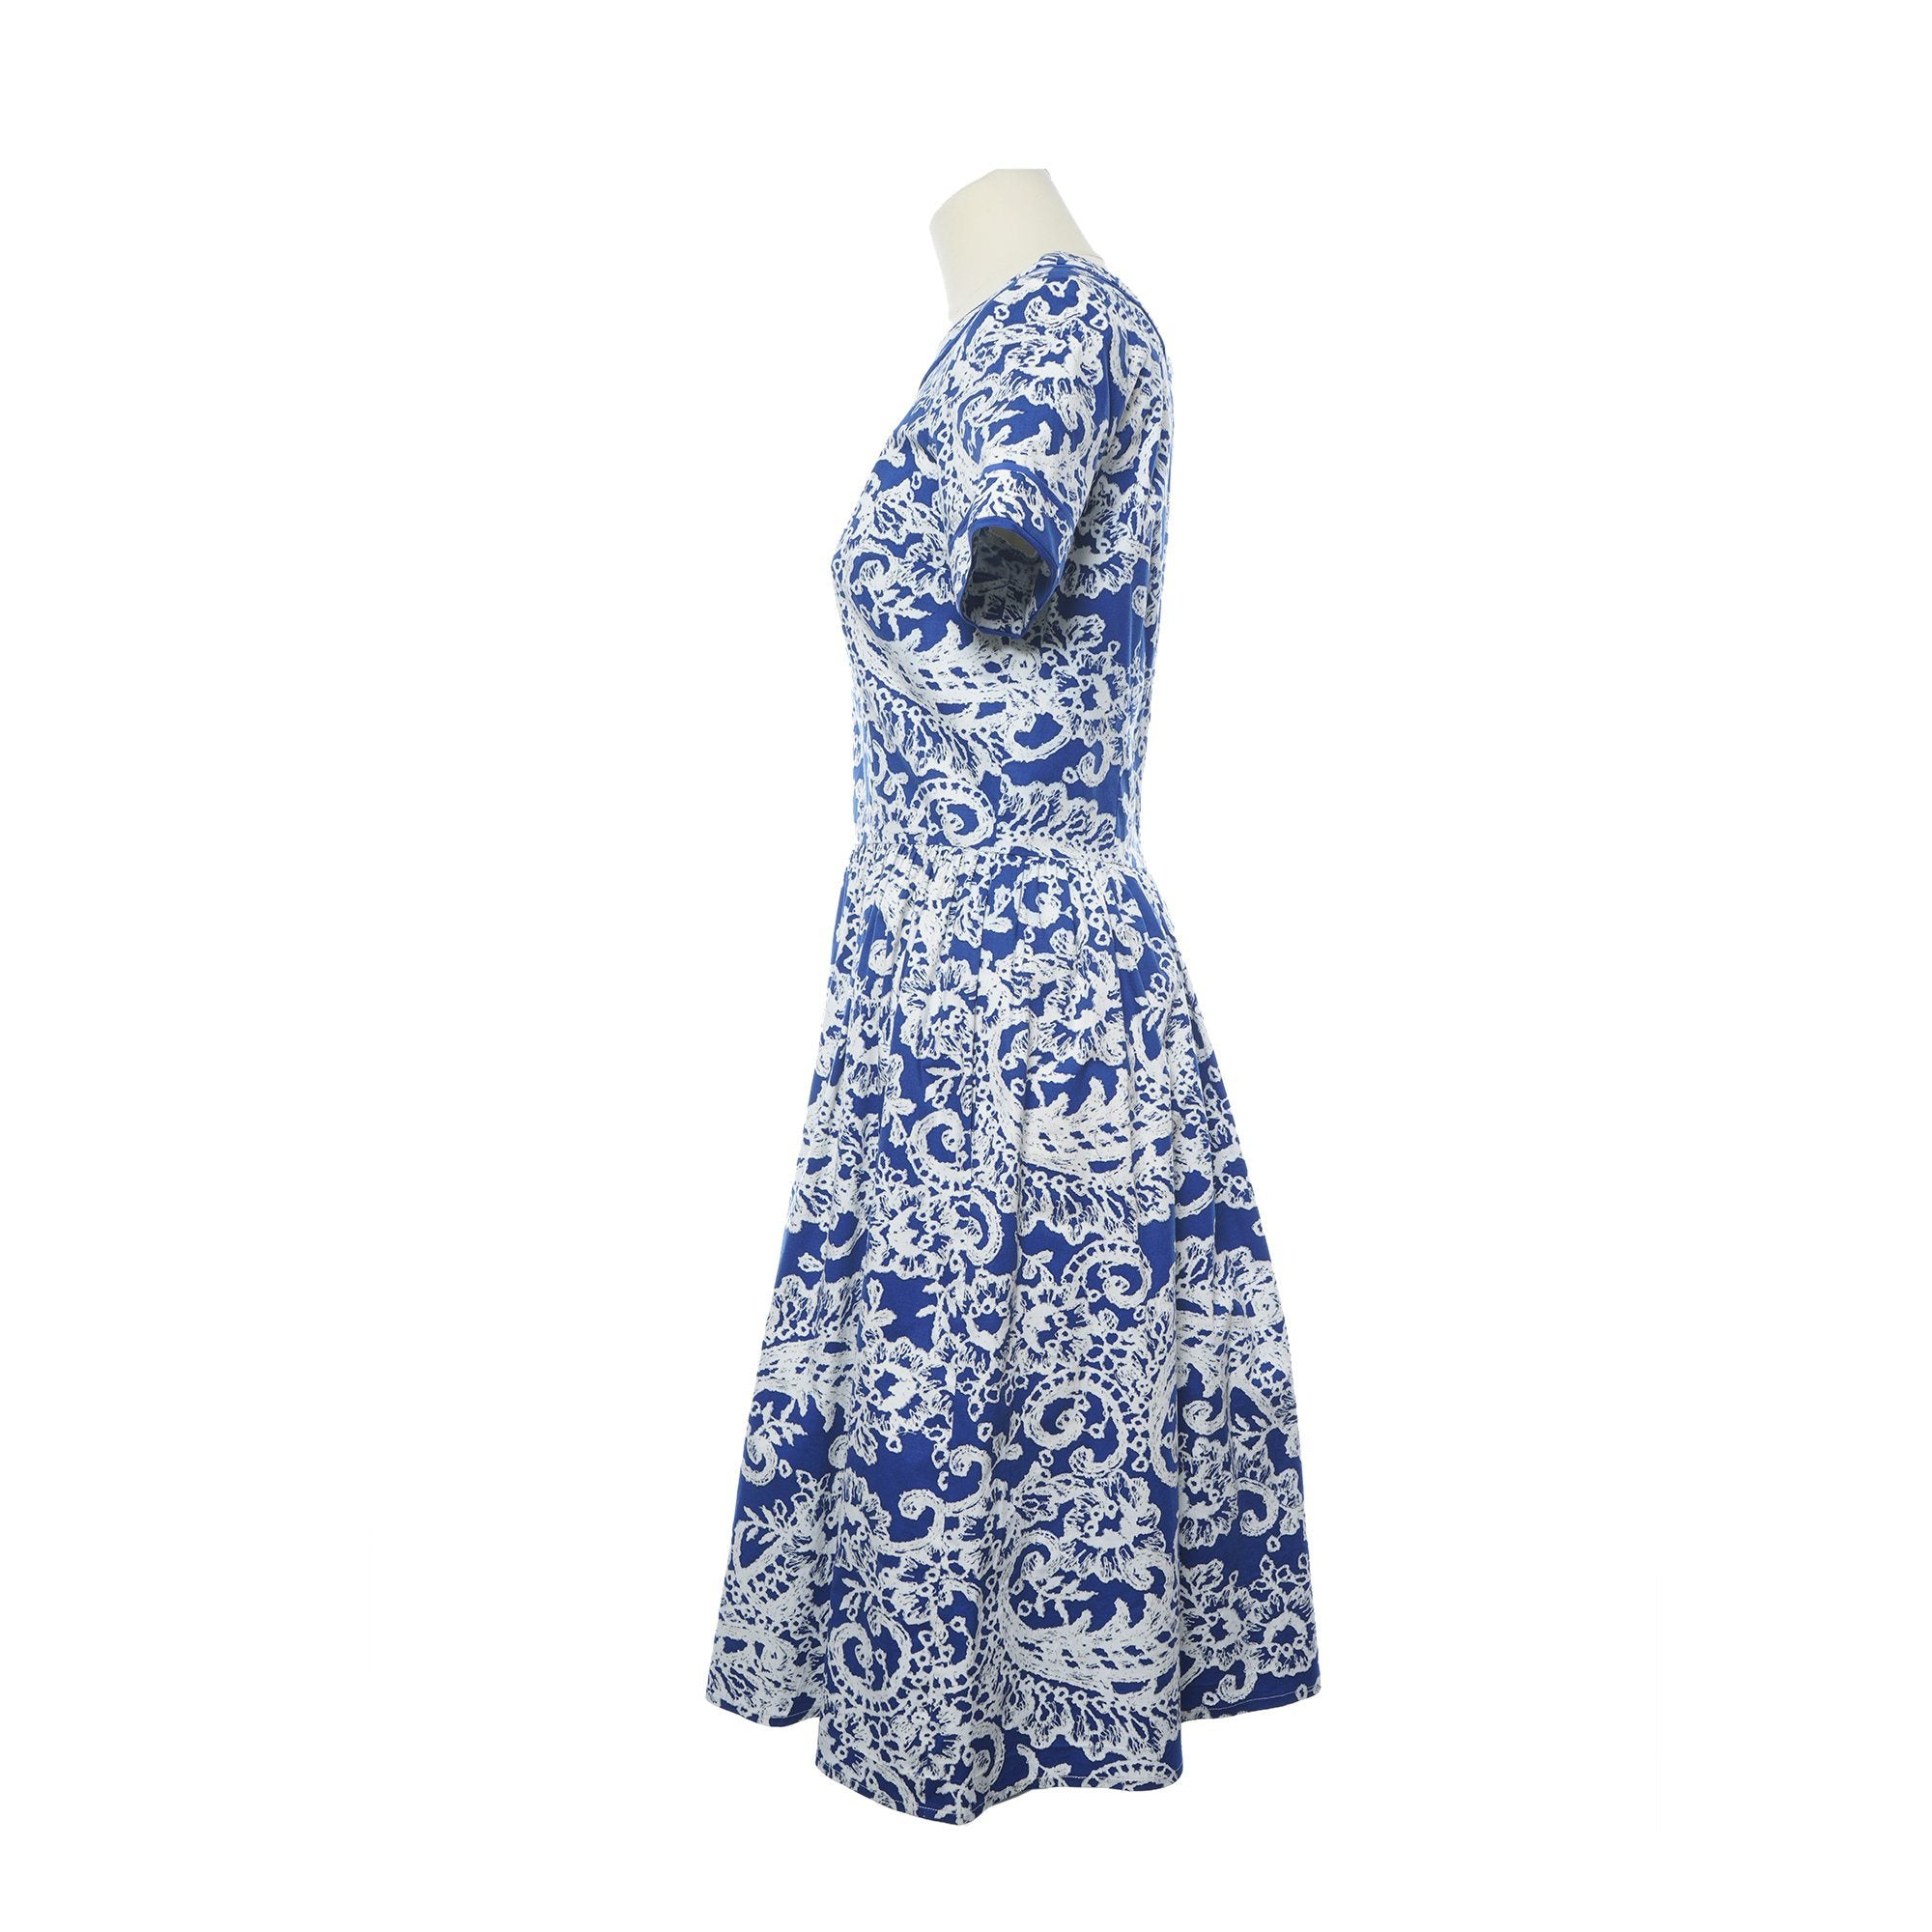 Oscar de la Renta Flared Printed Dress